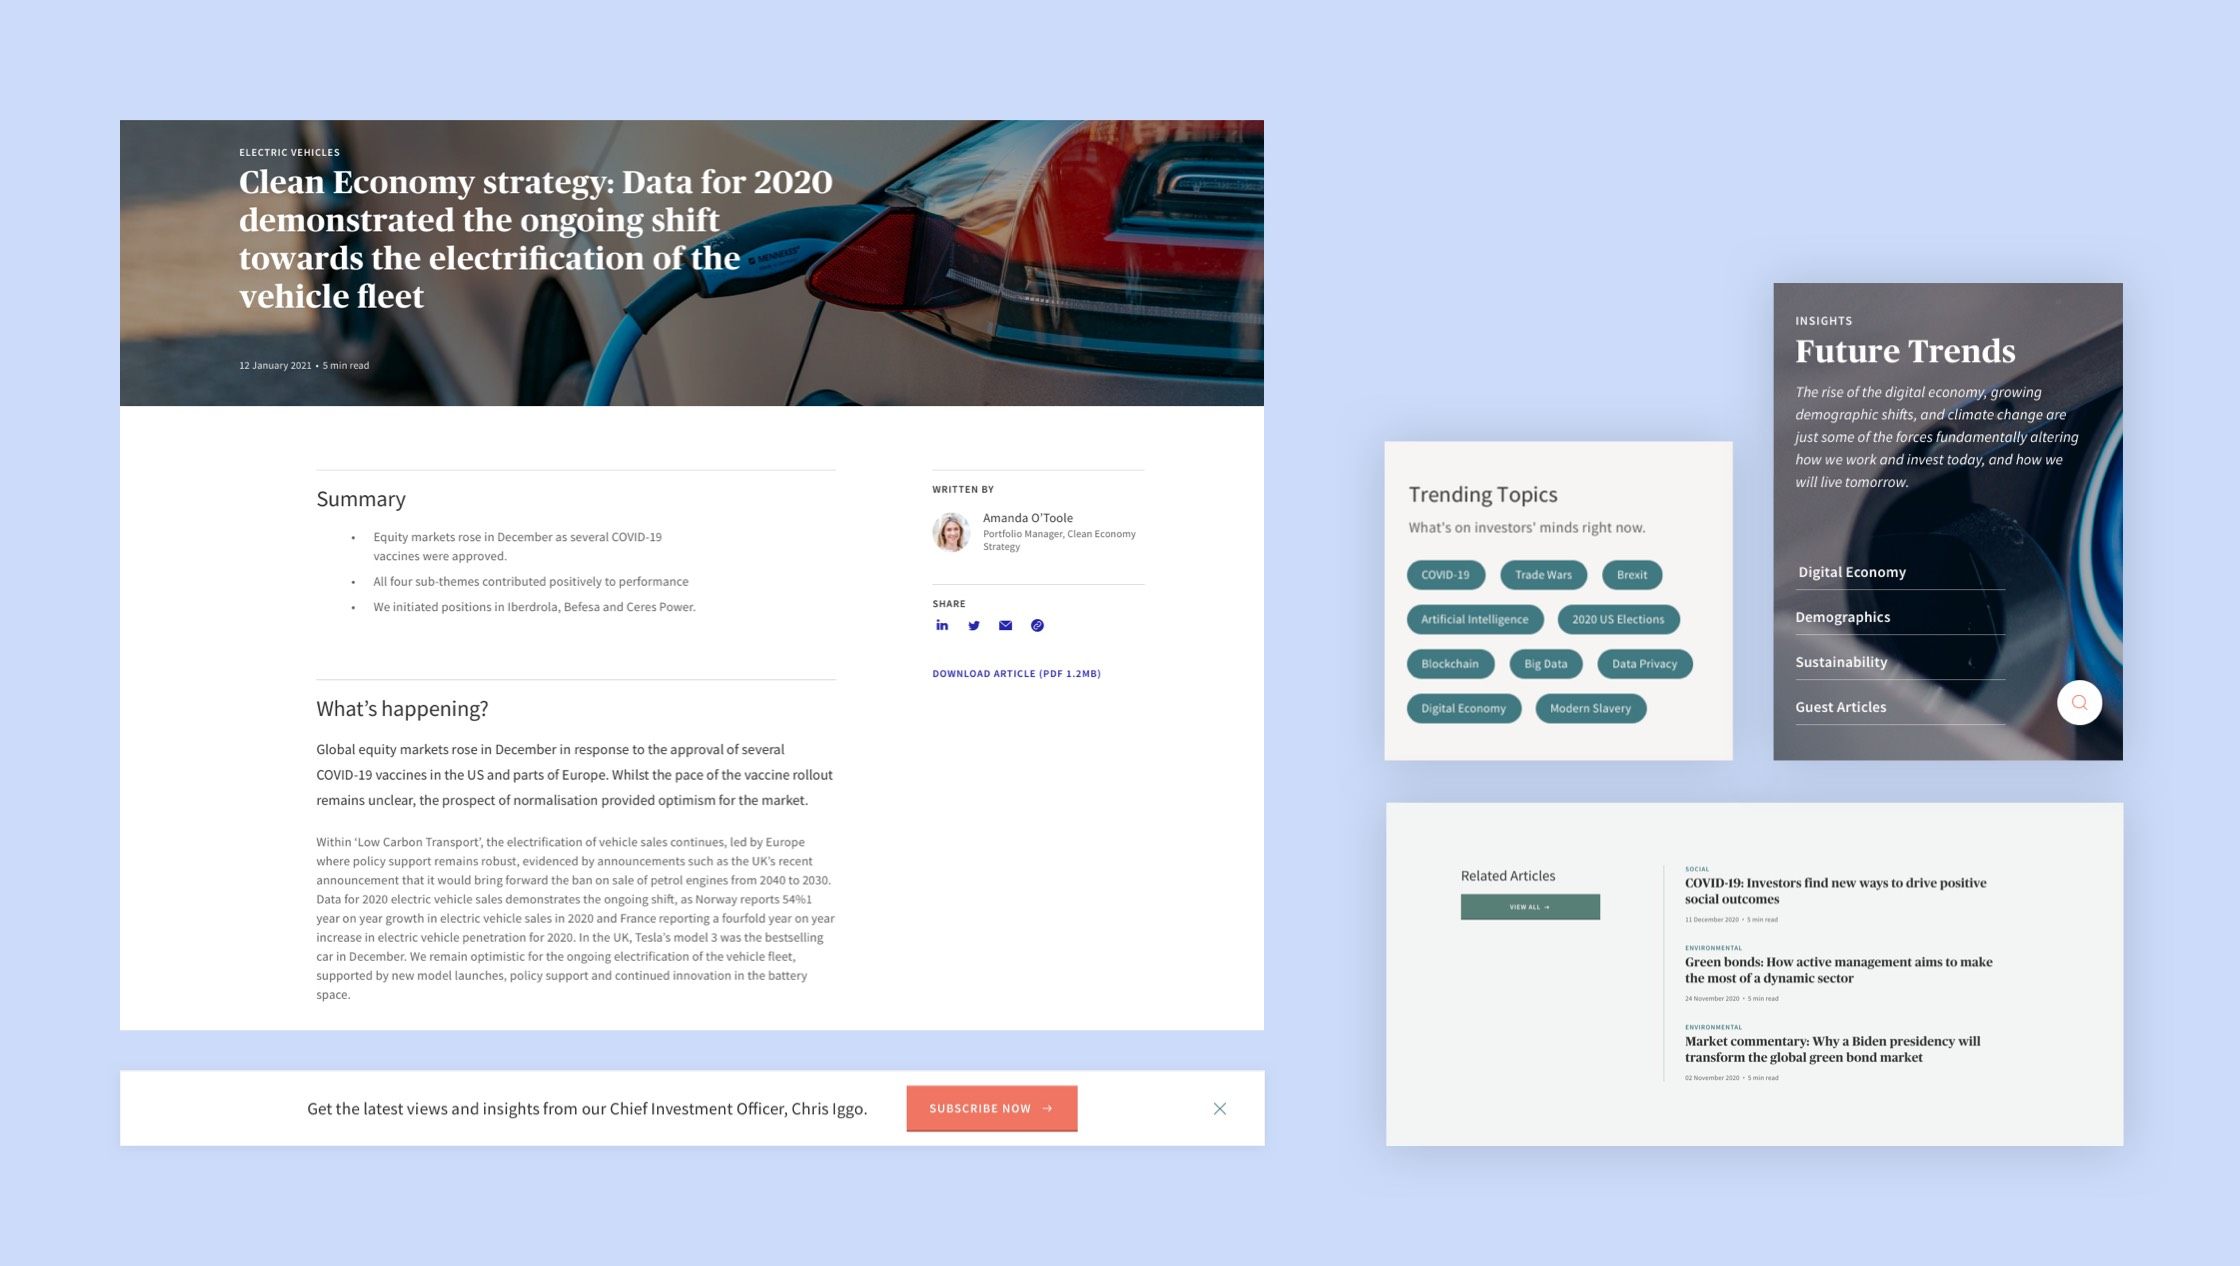 Screen shots of a mobile and desktop devices of the editorial web experience design for AXA IM.